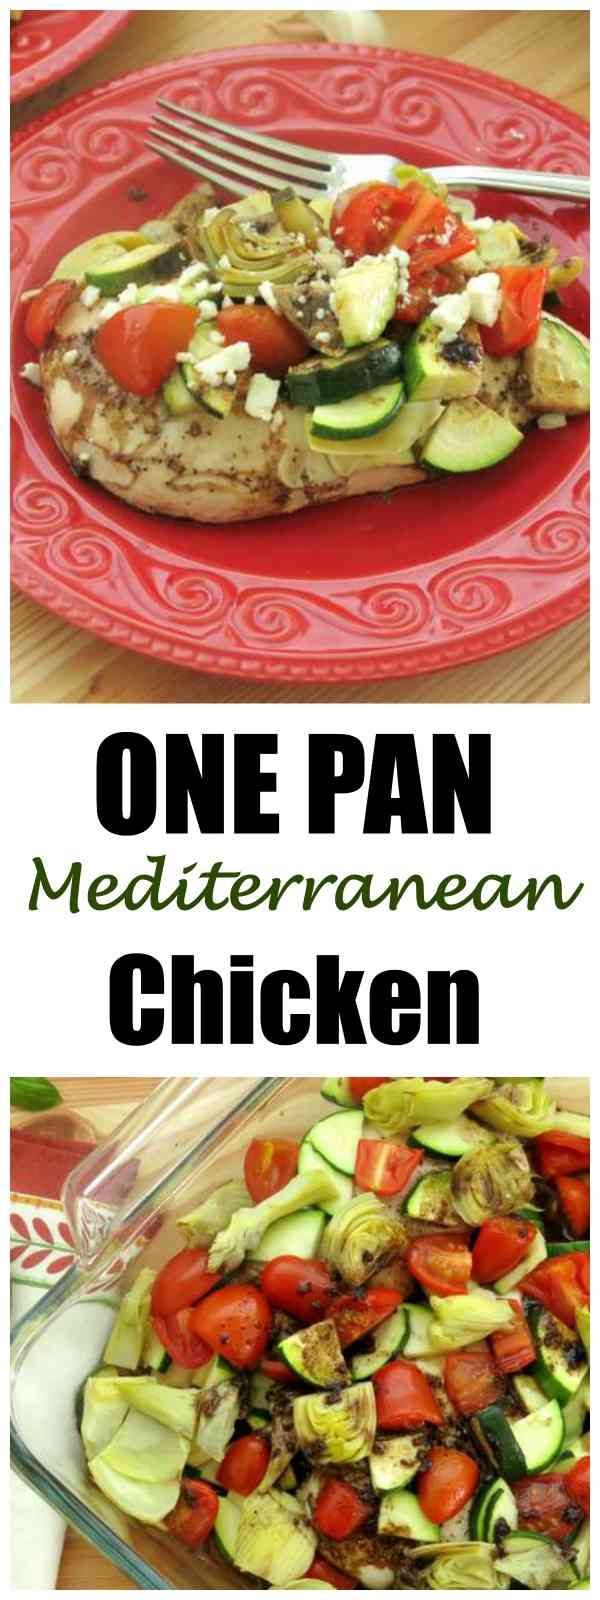 One Pan Mediterranean Chicken Bake Recipe